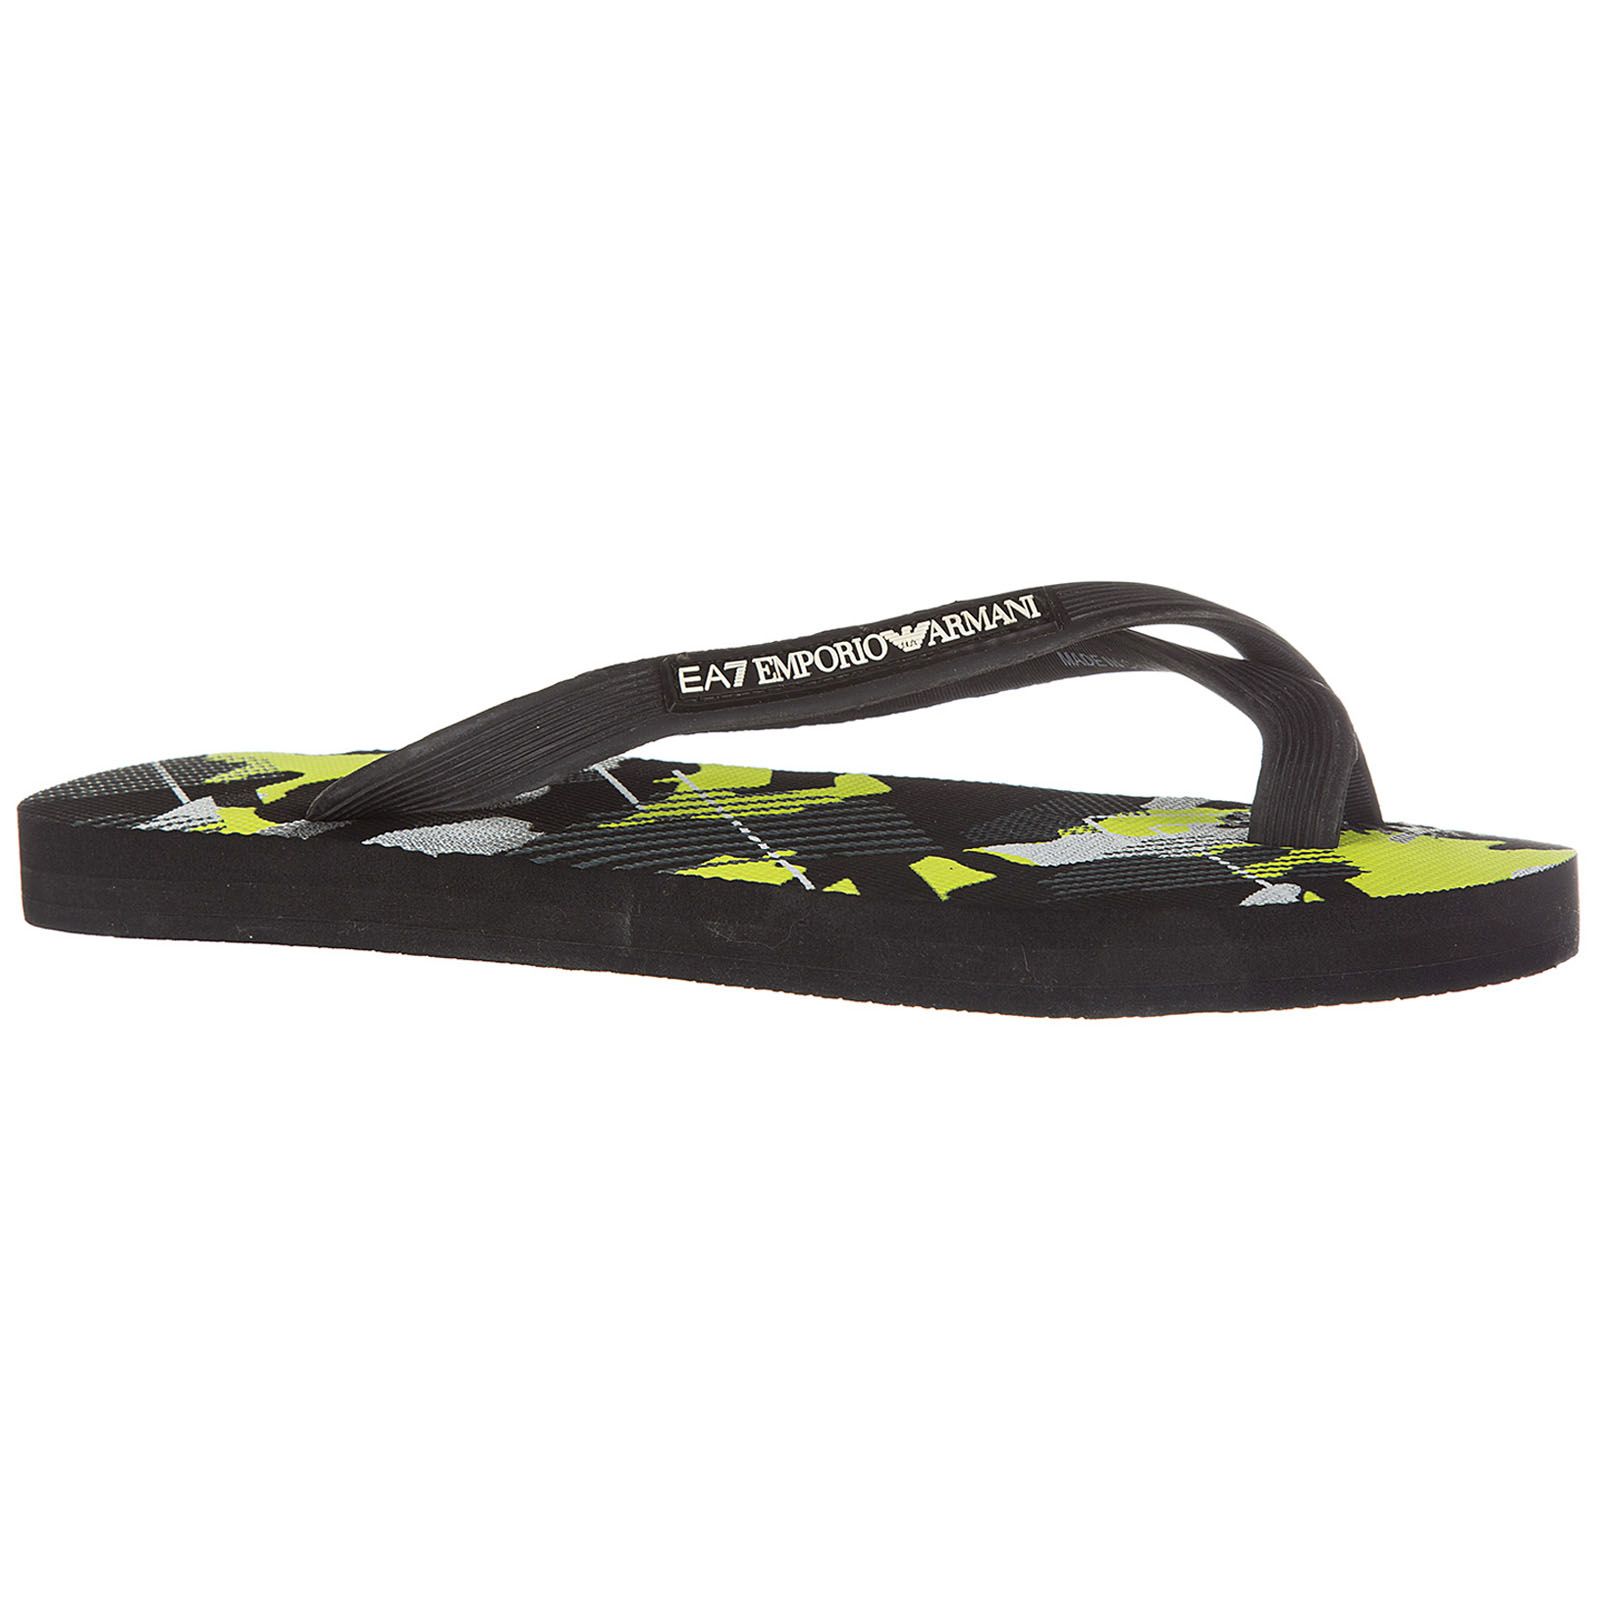 Tongs homme en caoutchouc  sea world visibility